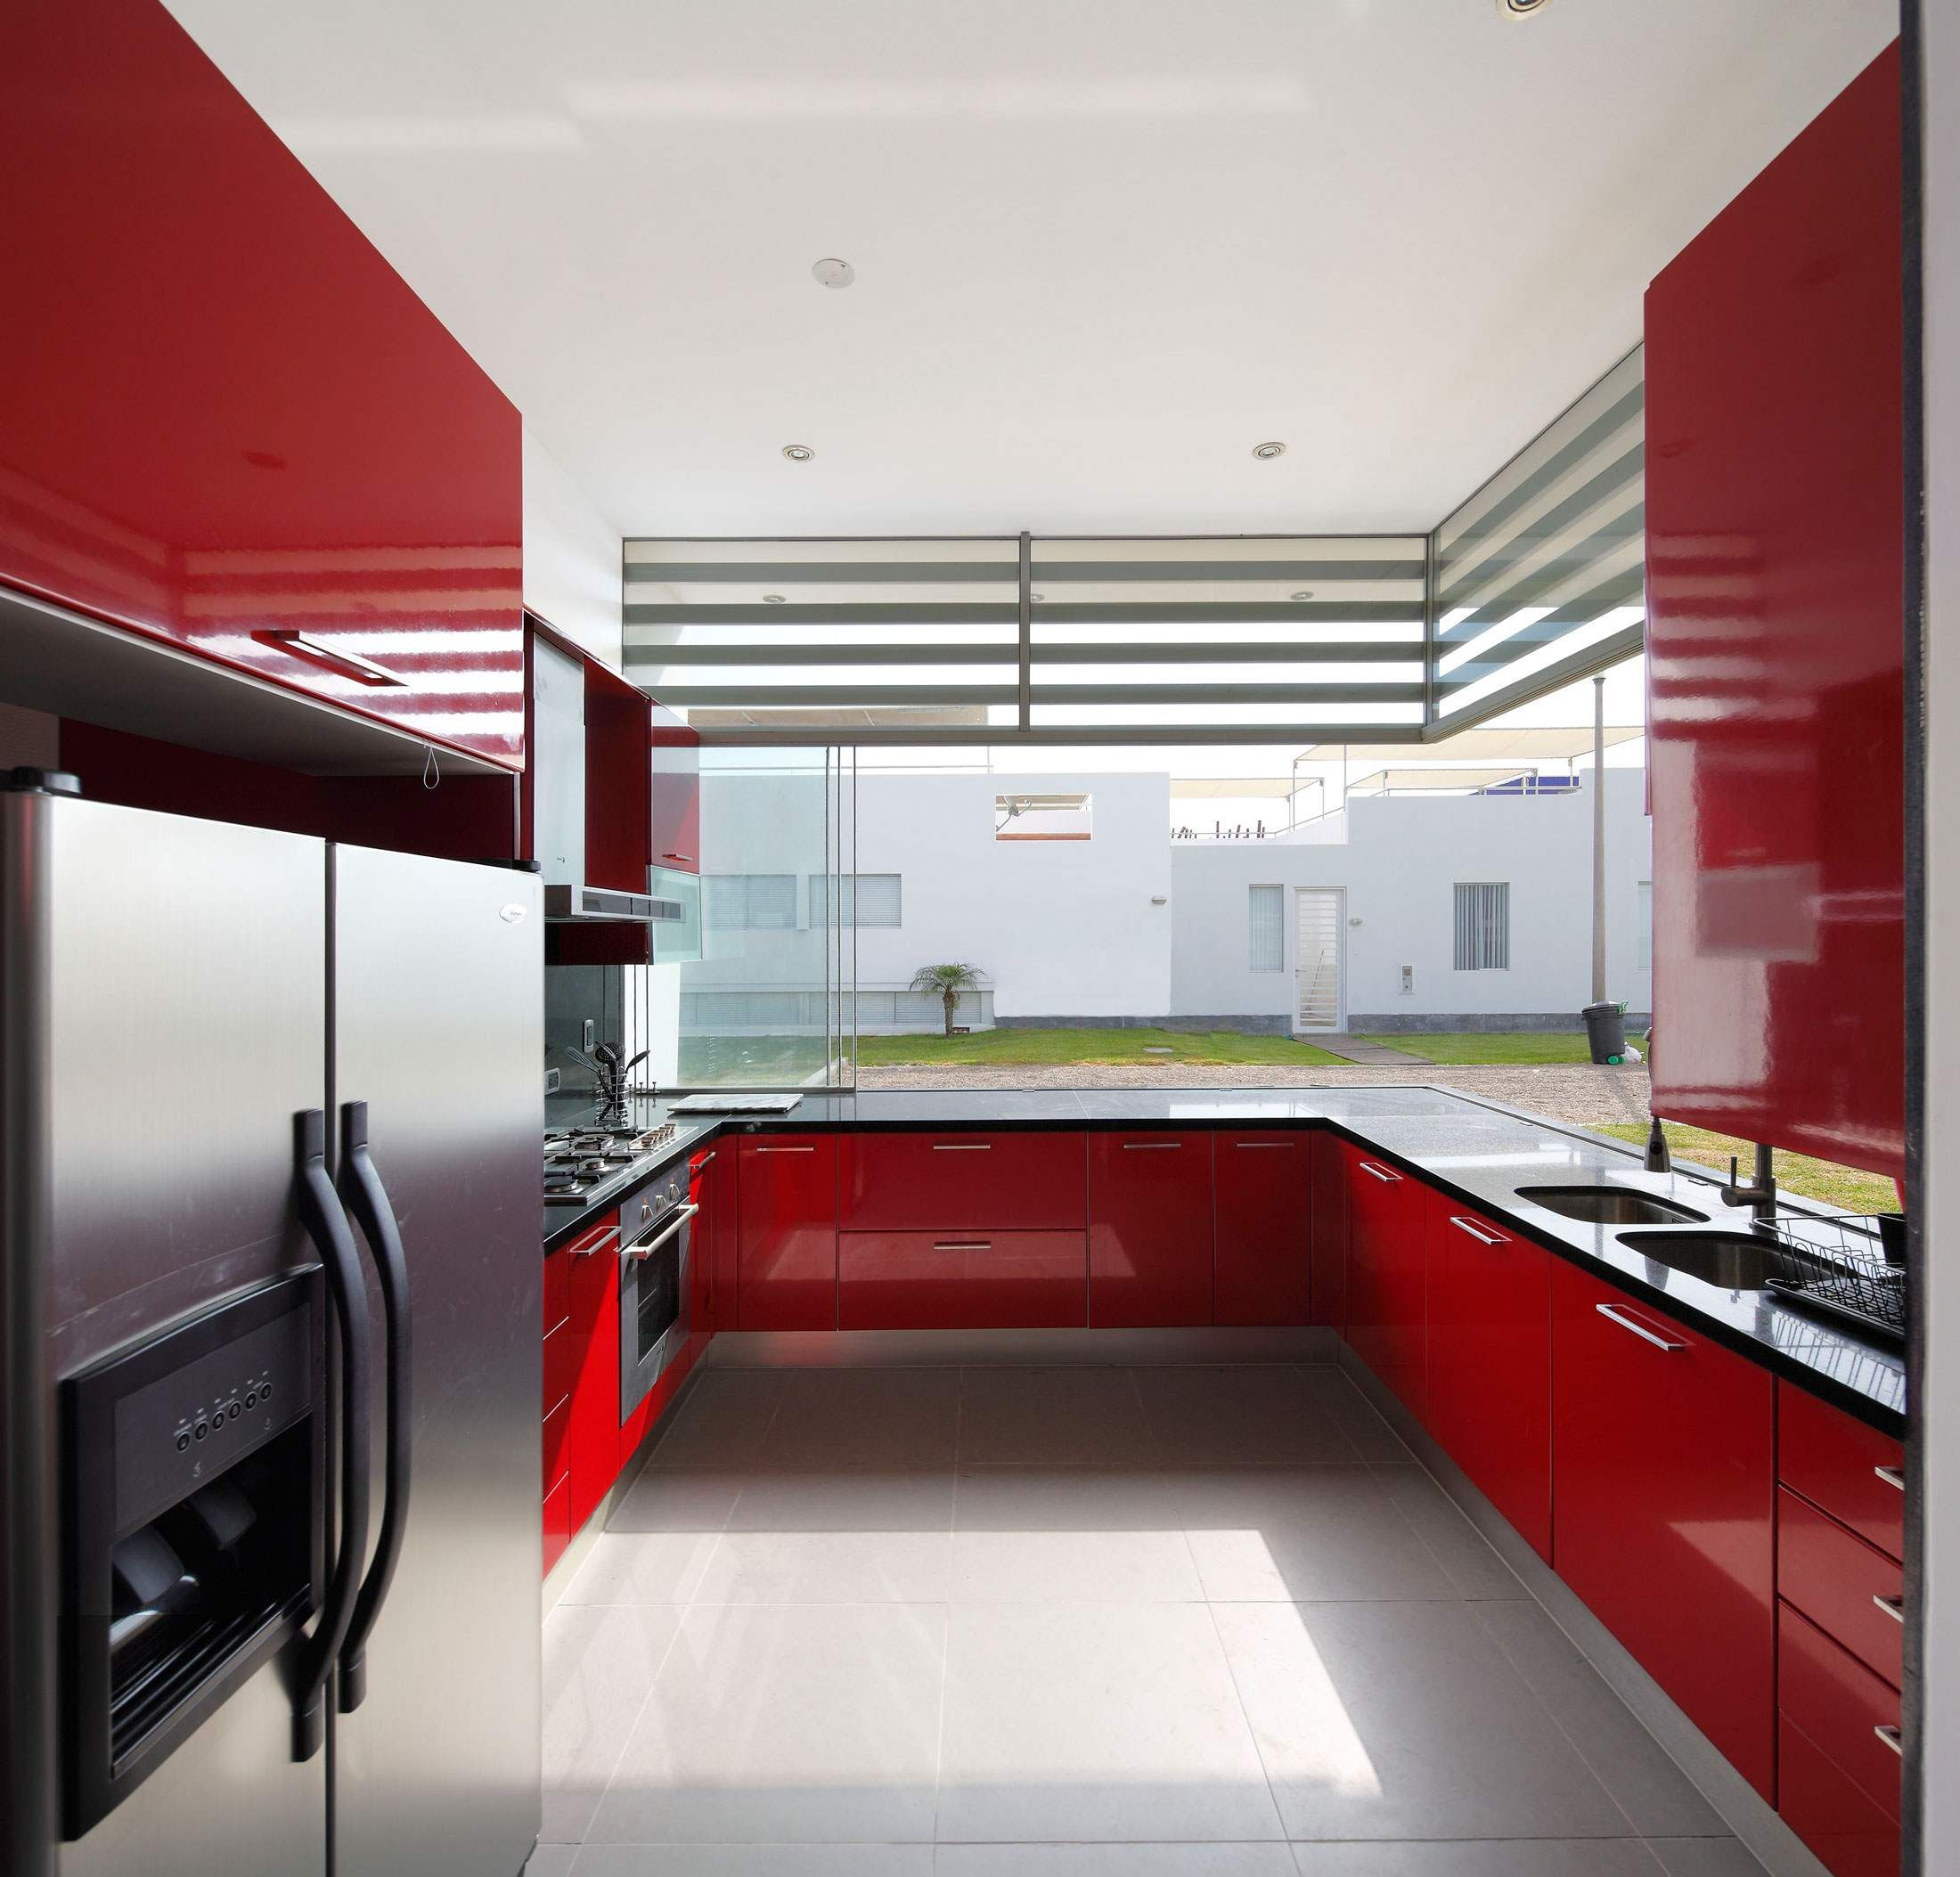 Image Result For Black Red And White Kitchen Part 57